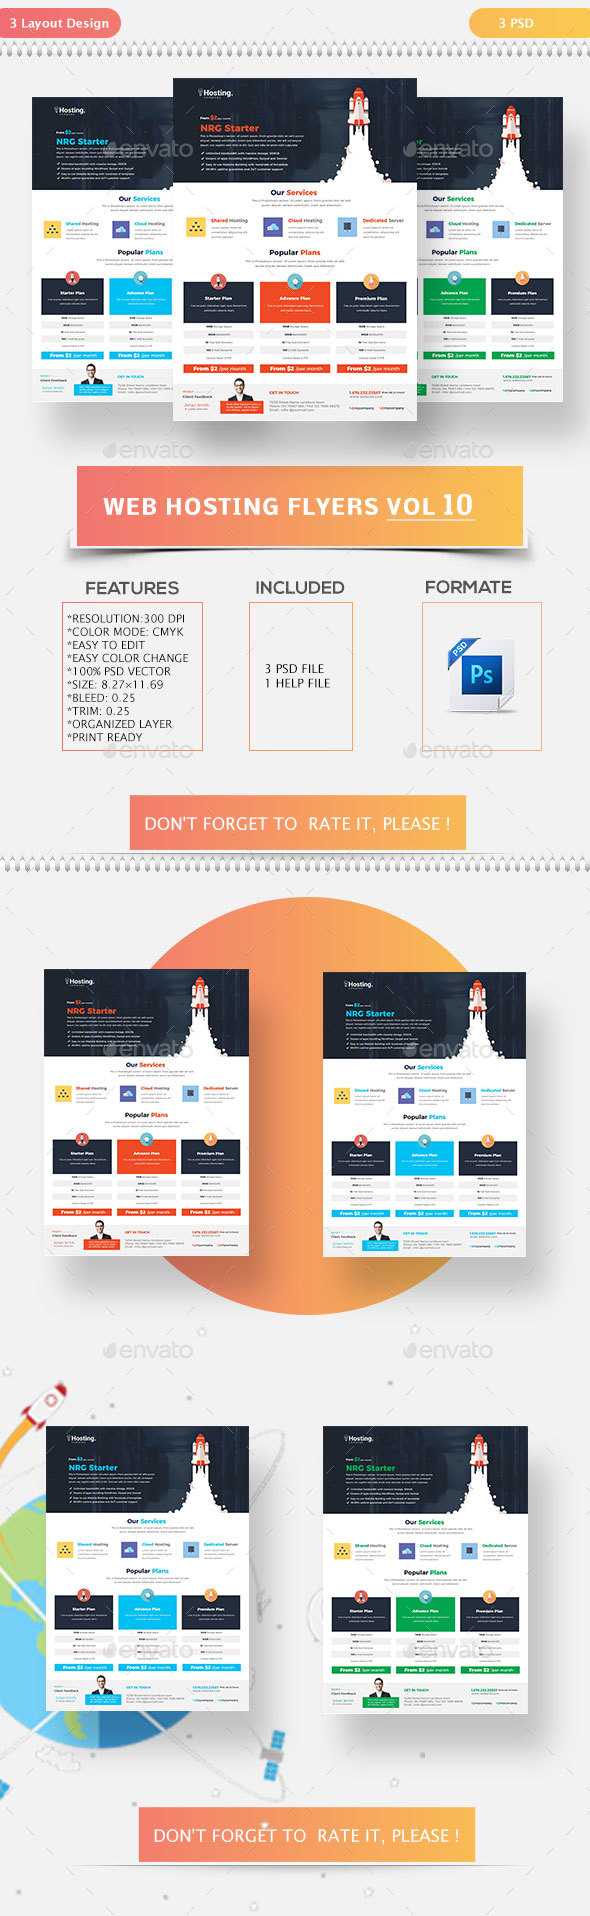 Web Hosting Flyers Vol-10 - Commerce Flyers